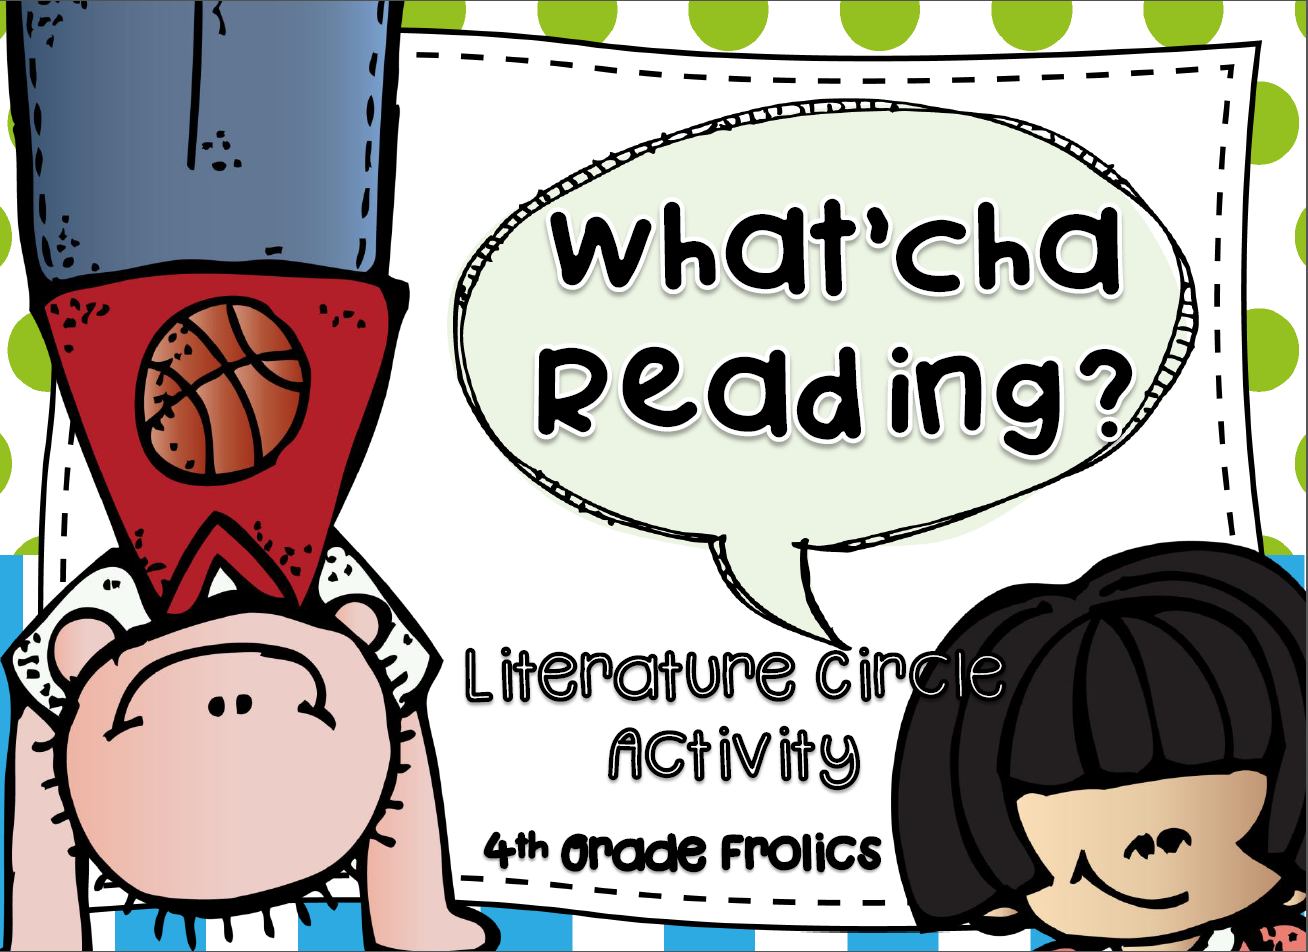 http://www.teacherspayteachers.com/Product/Whatcha-Reading-Literature-Circle-Activity-1223536